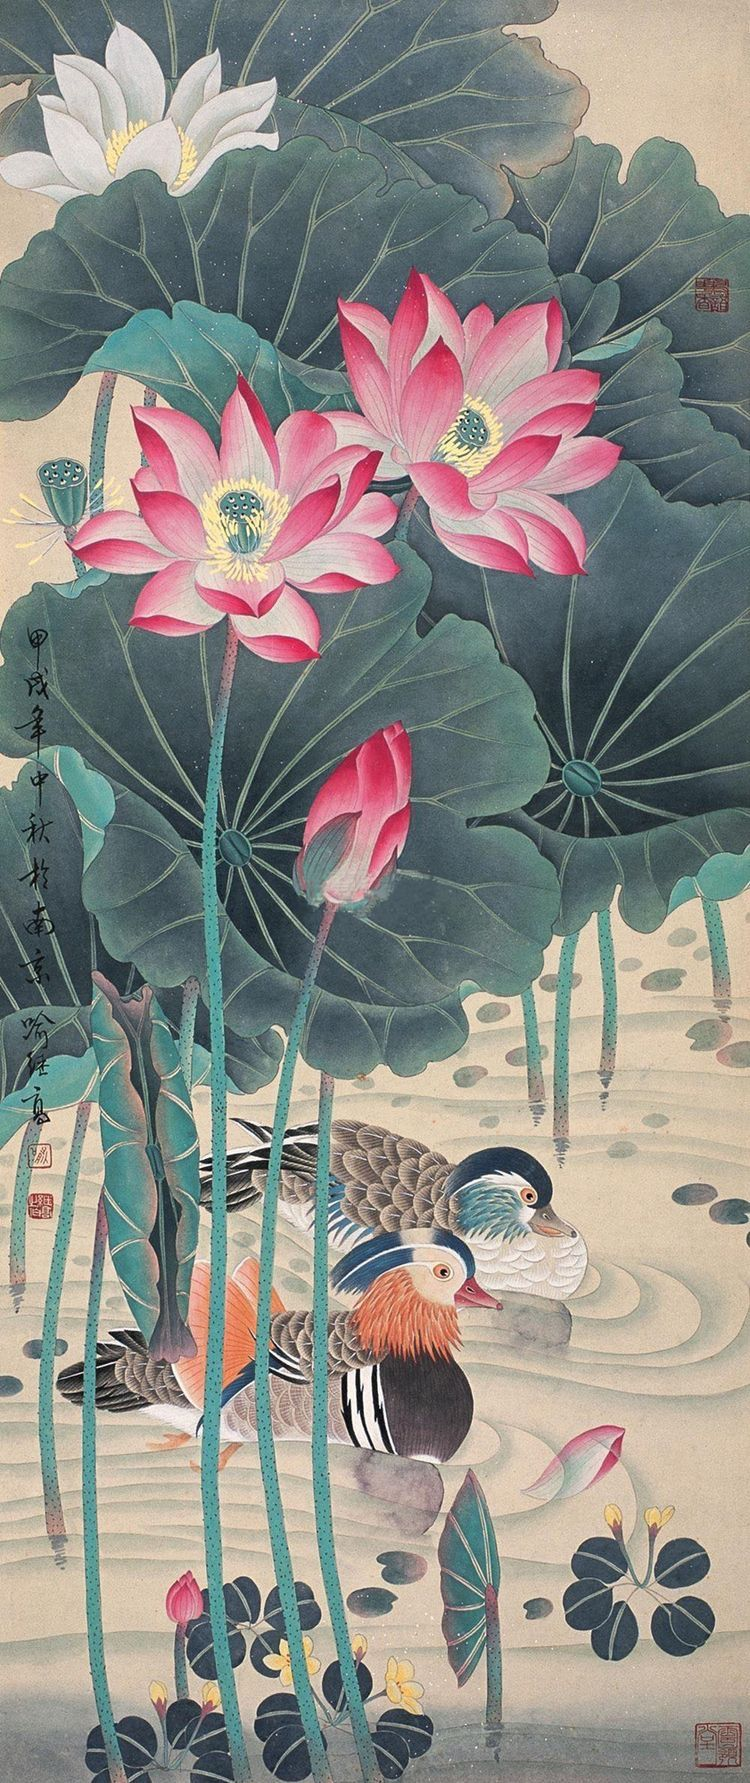 Oriental Painting Of Lotus Flowers With Ducks Beautiful Magical